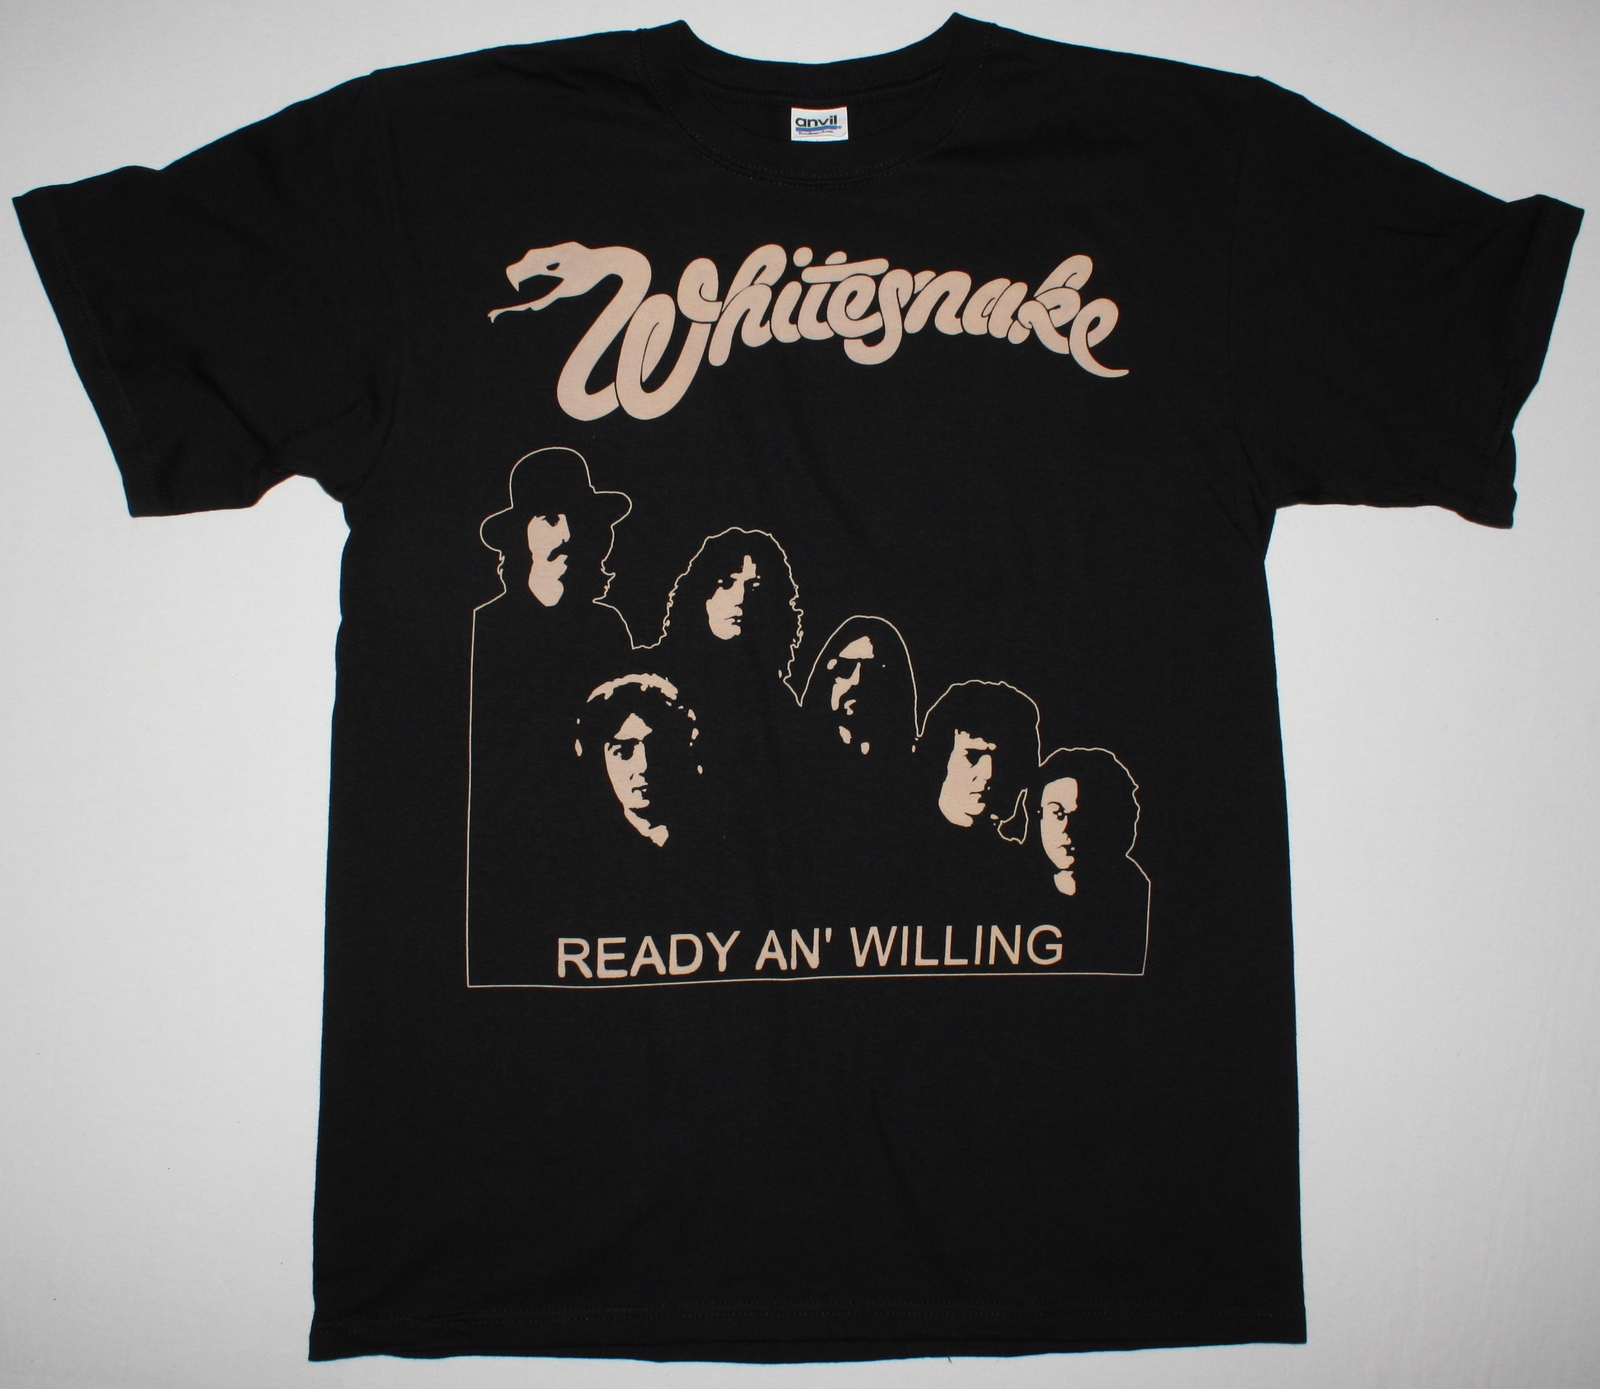 Whitesnake Ready An Willing 80 Covedale Jon Lord New